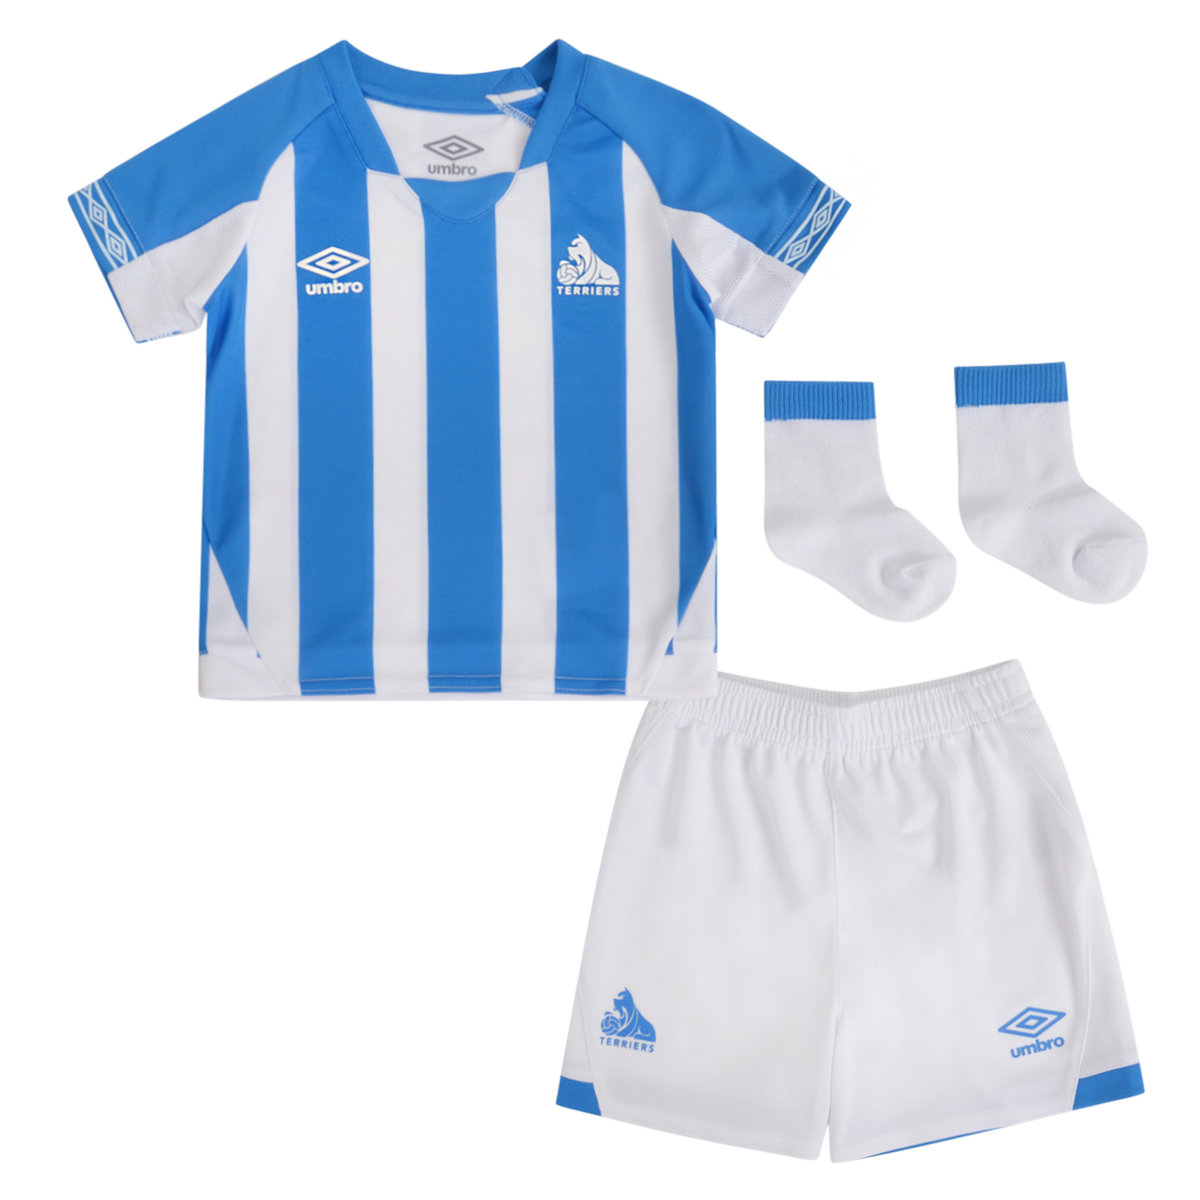 HUDDERSFIELD TOWN 18/19 HOME BABY KIT